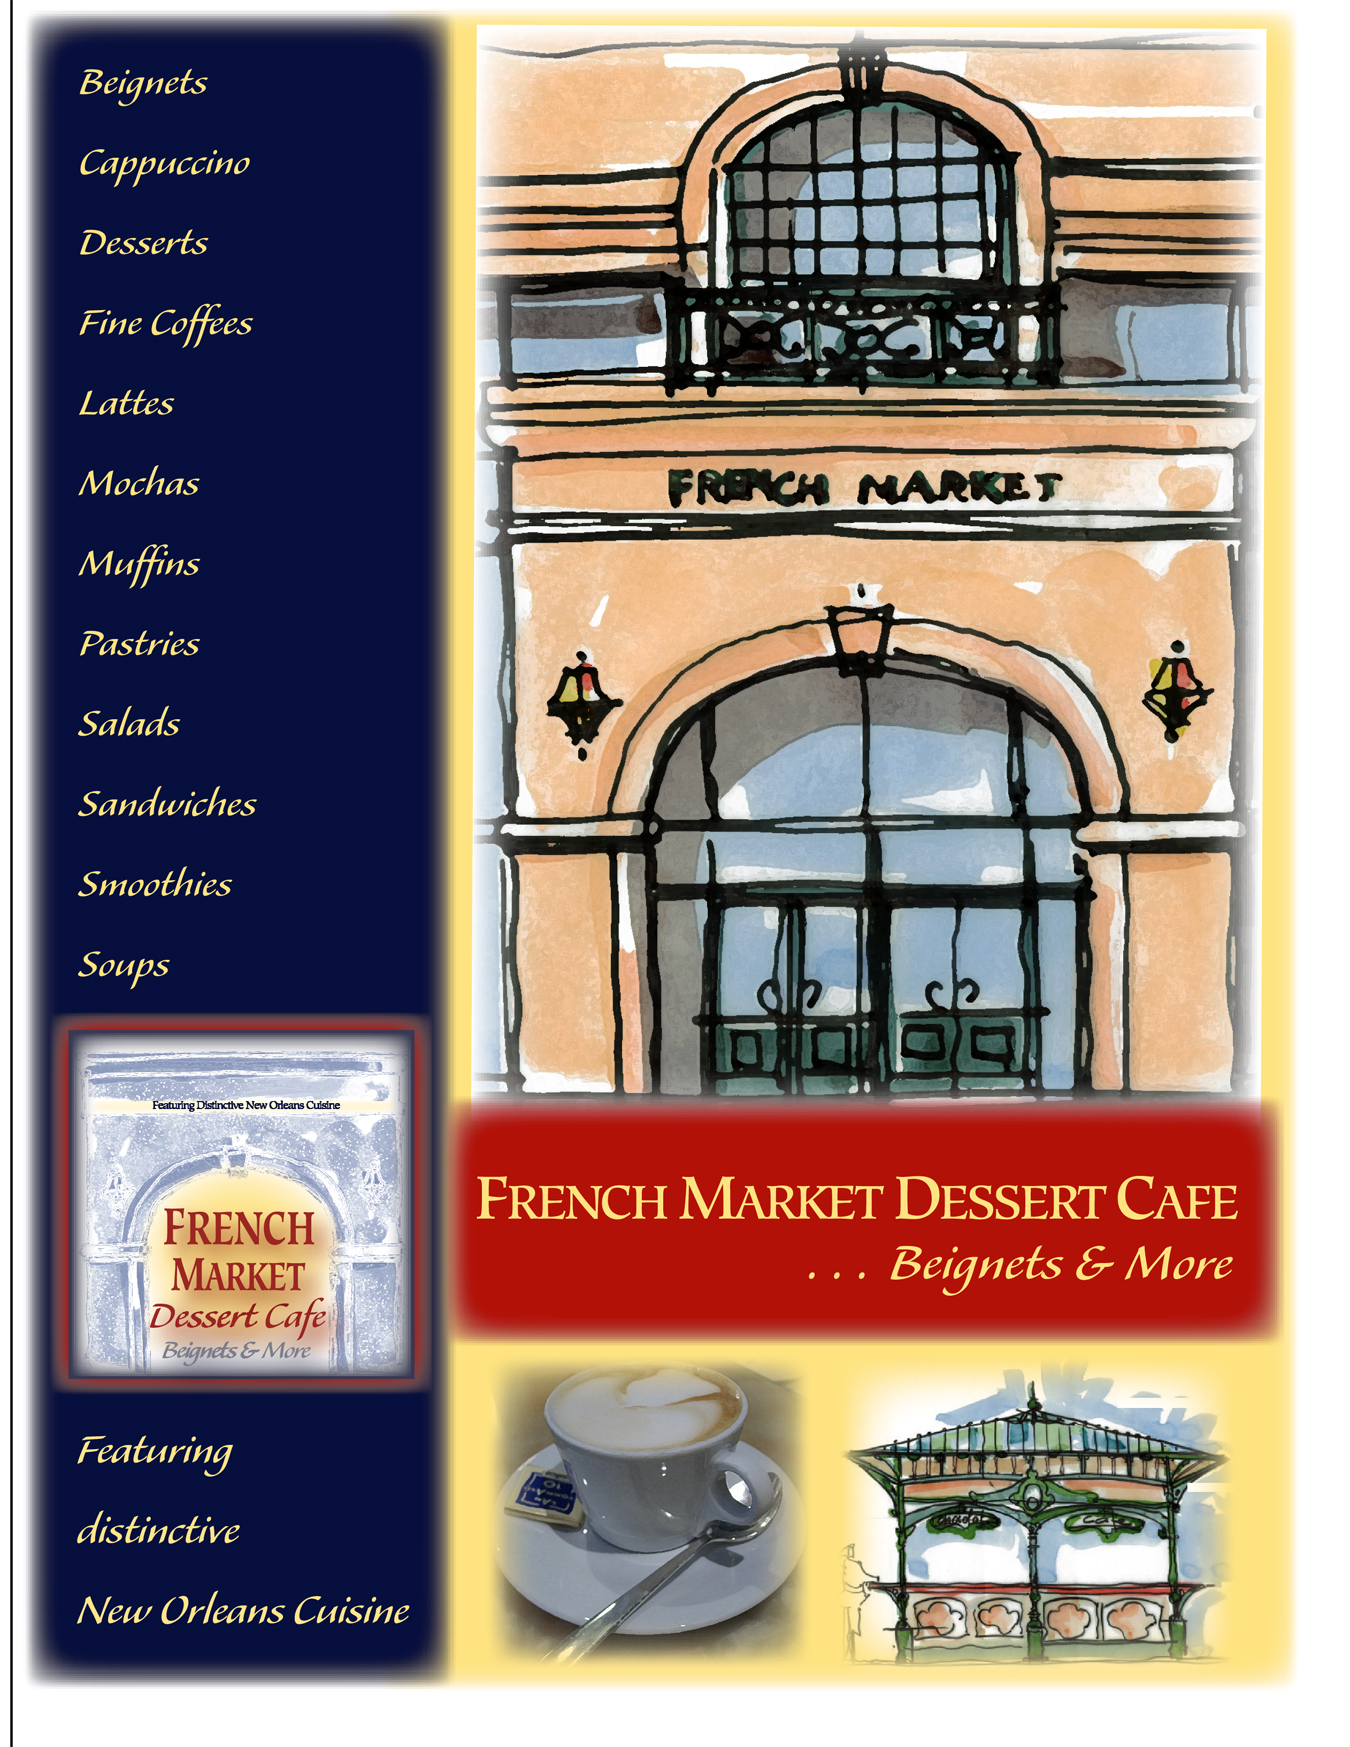 FrenchMarket-Cover.jpg